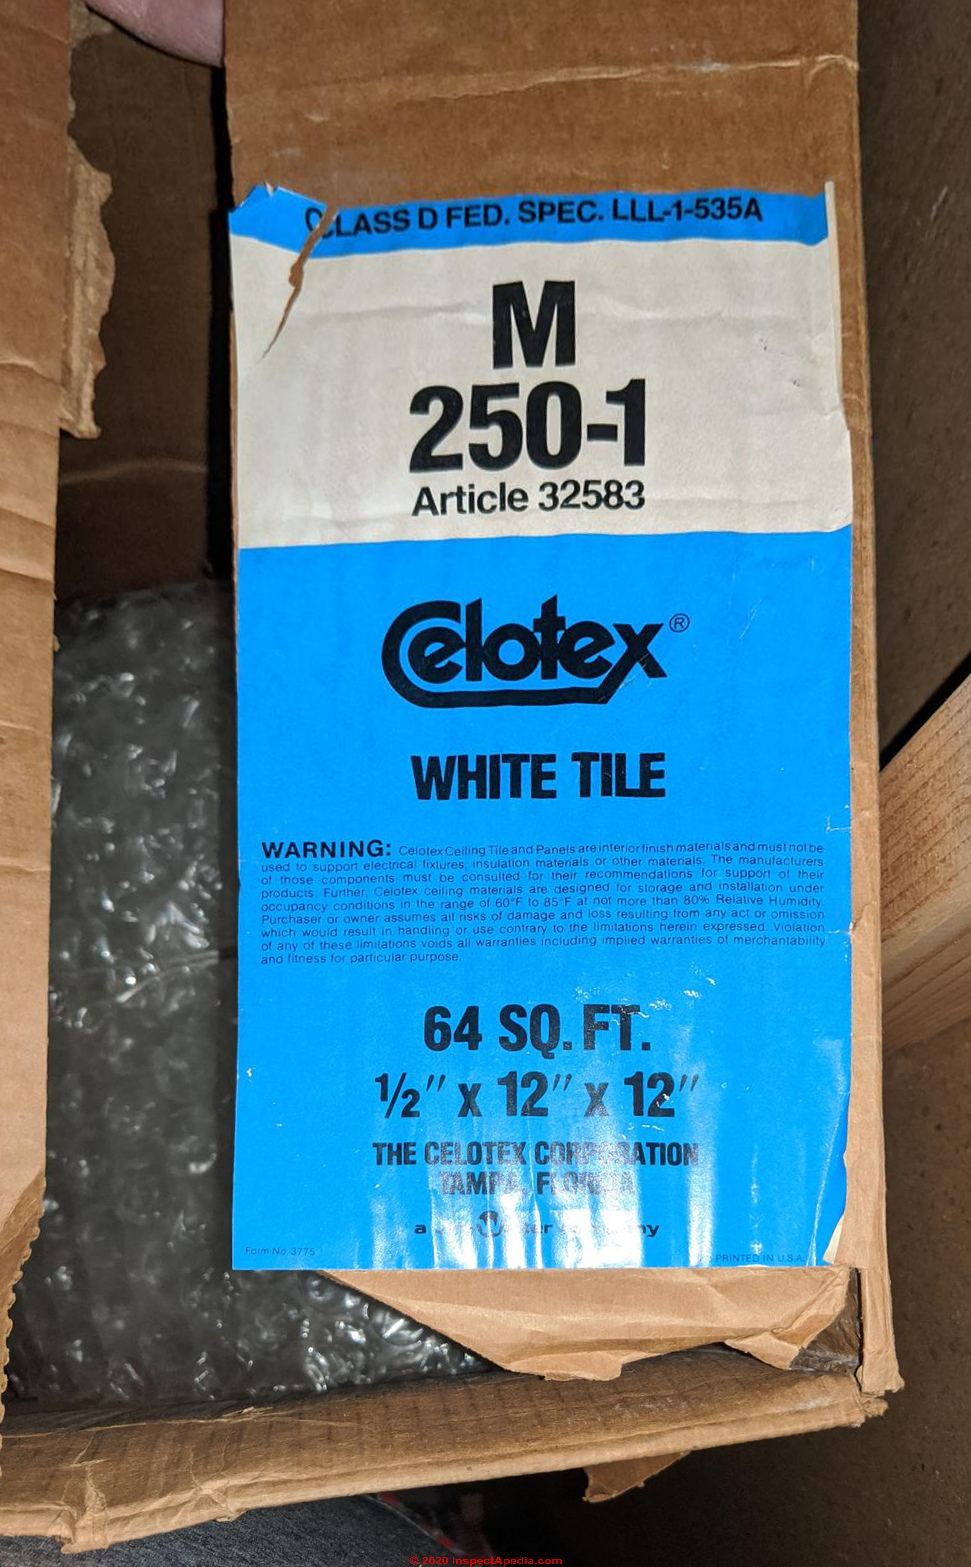 Celotex Insulating Products Believed To Contain Asbestos Or To Be Asbestos Free